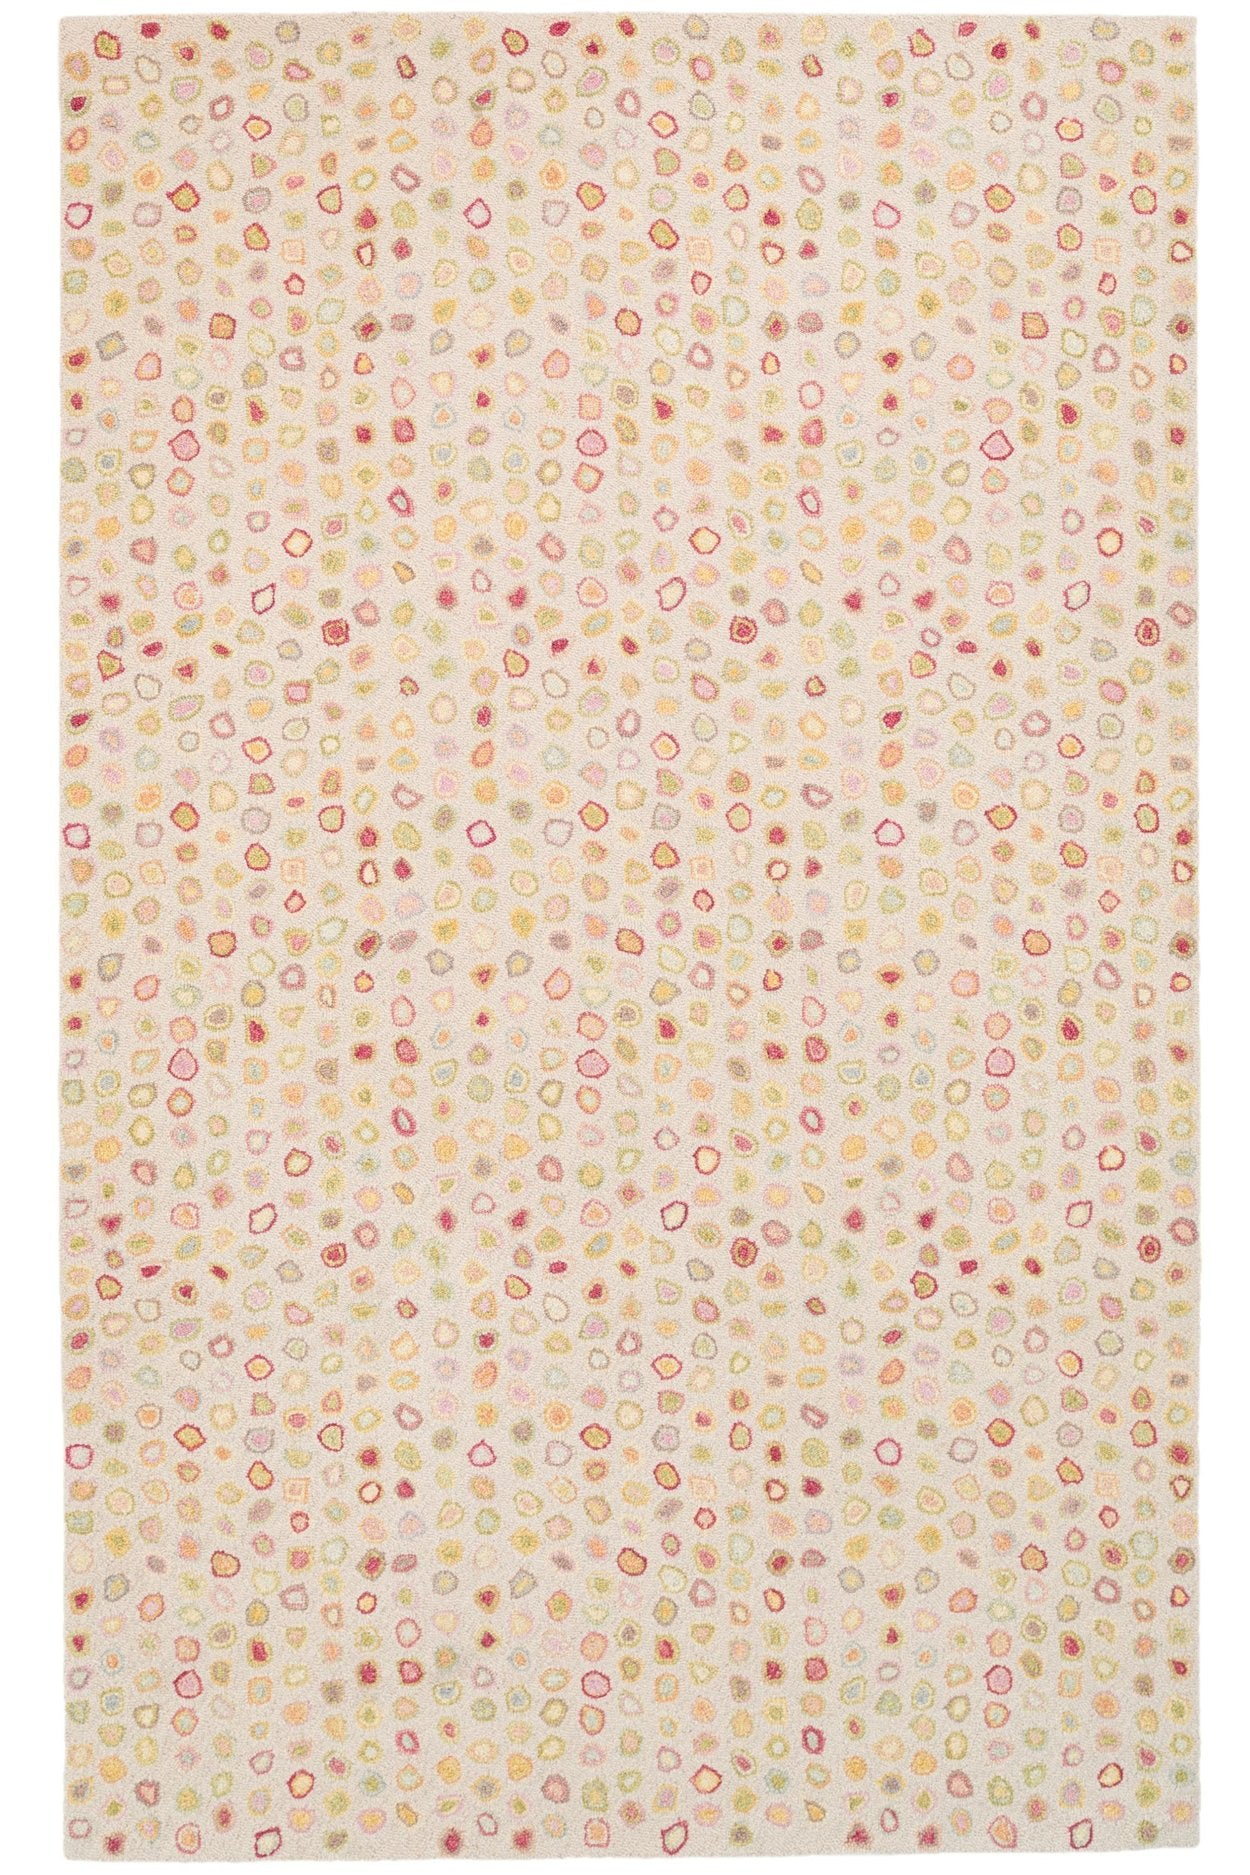 Cats Paw Pastel 2x3 Rug